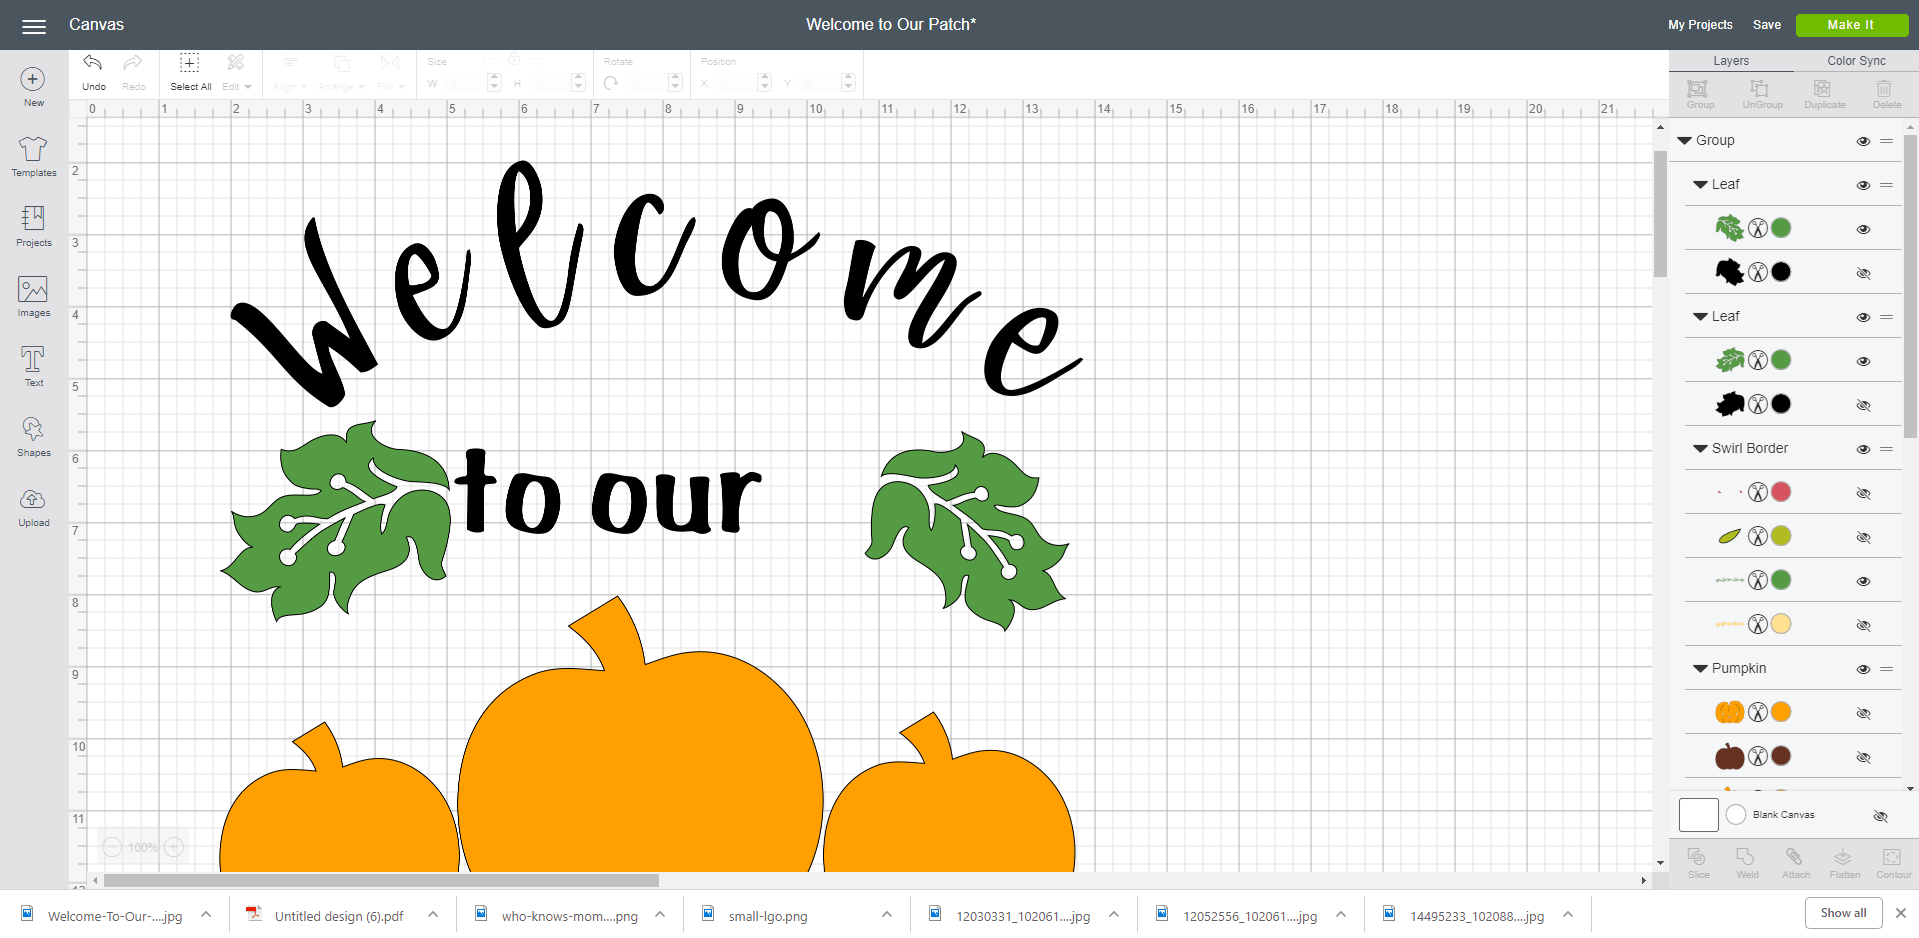 welcome to our patch in cricut